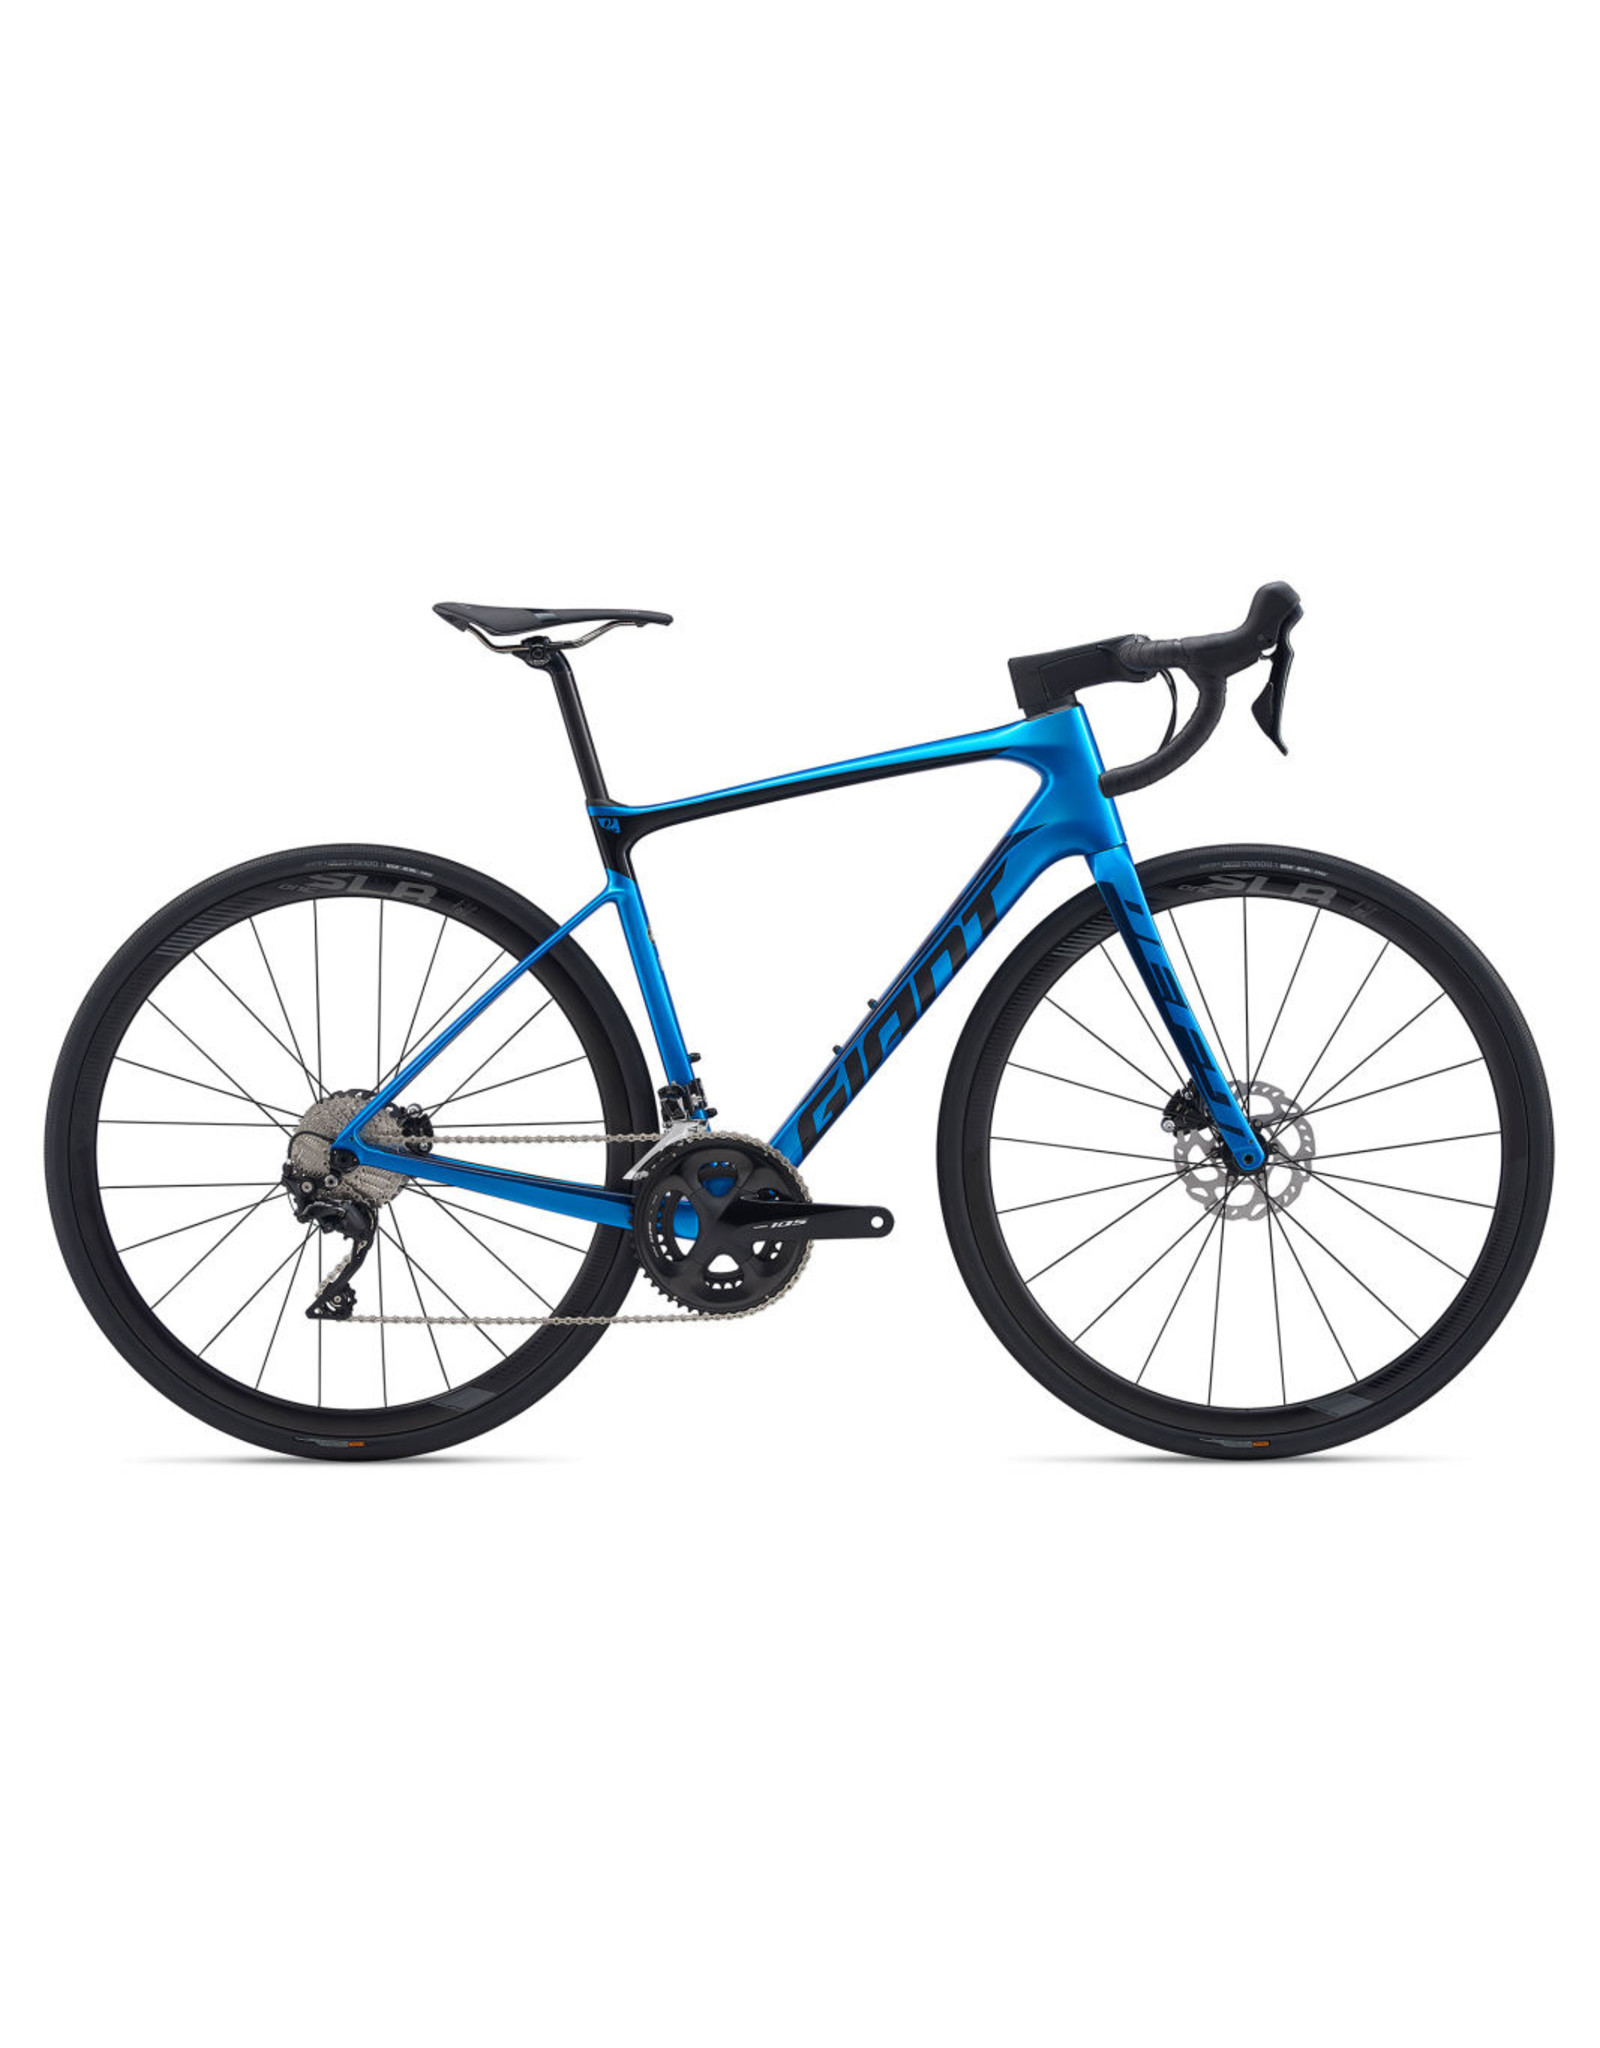 Giant 2020 Giant Defy Advanced pro 3